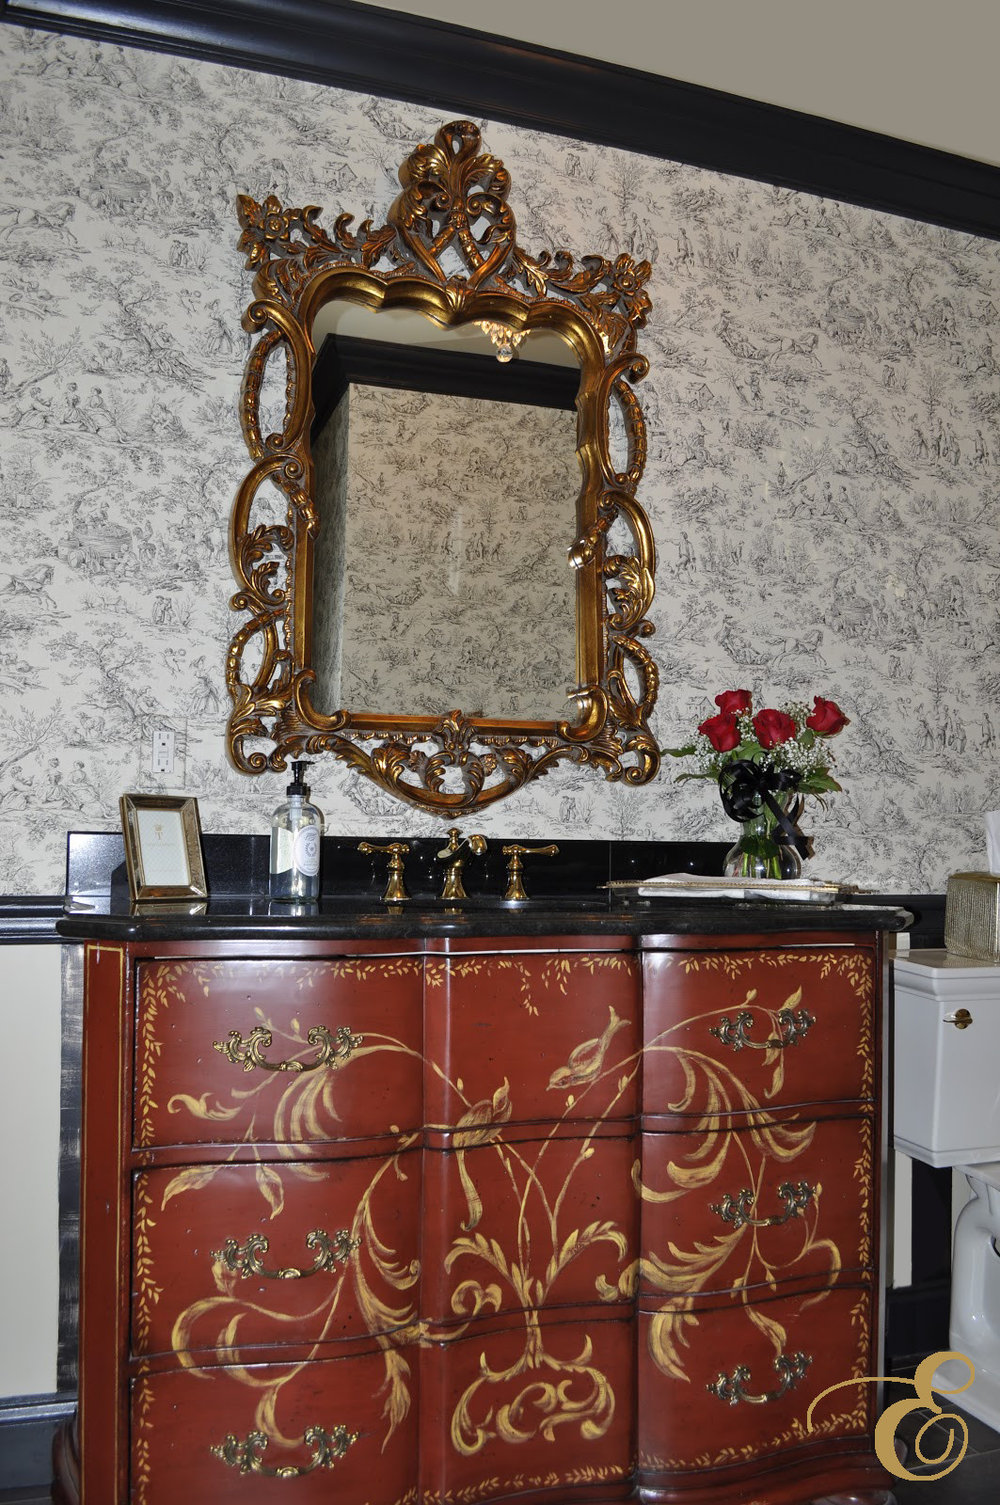 Our client wanted a traditional and luxurious powder room with toile wallpaper and accents in red, her favorite color